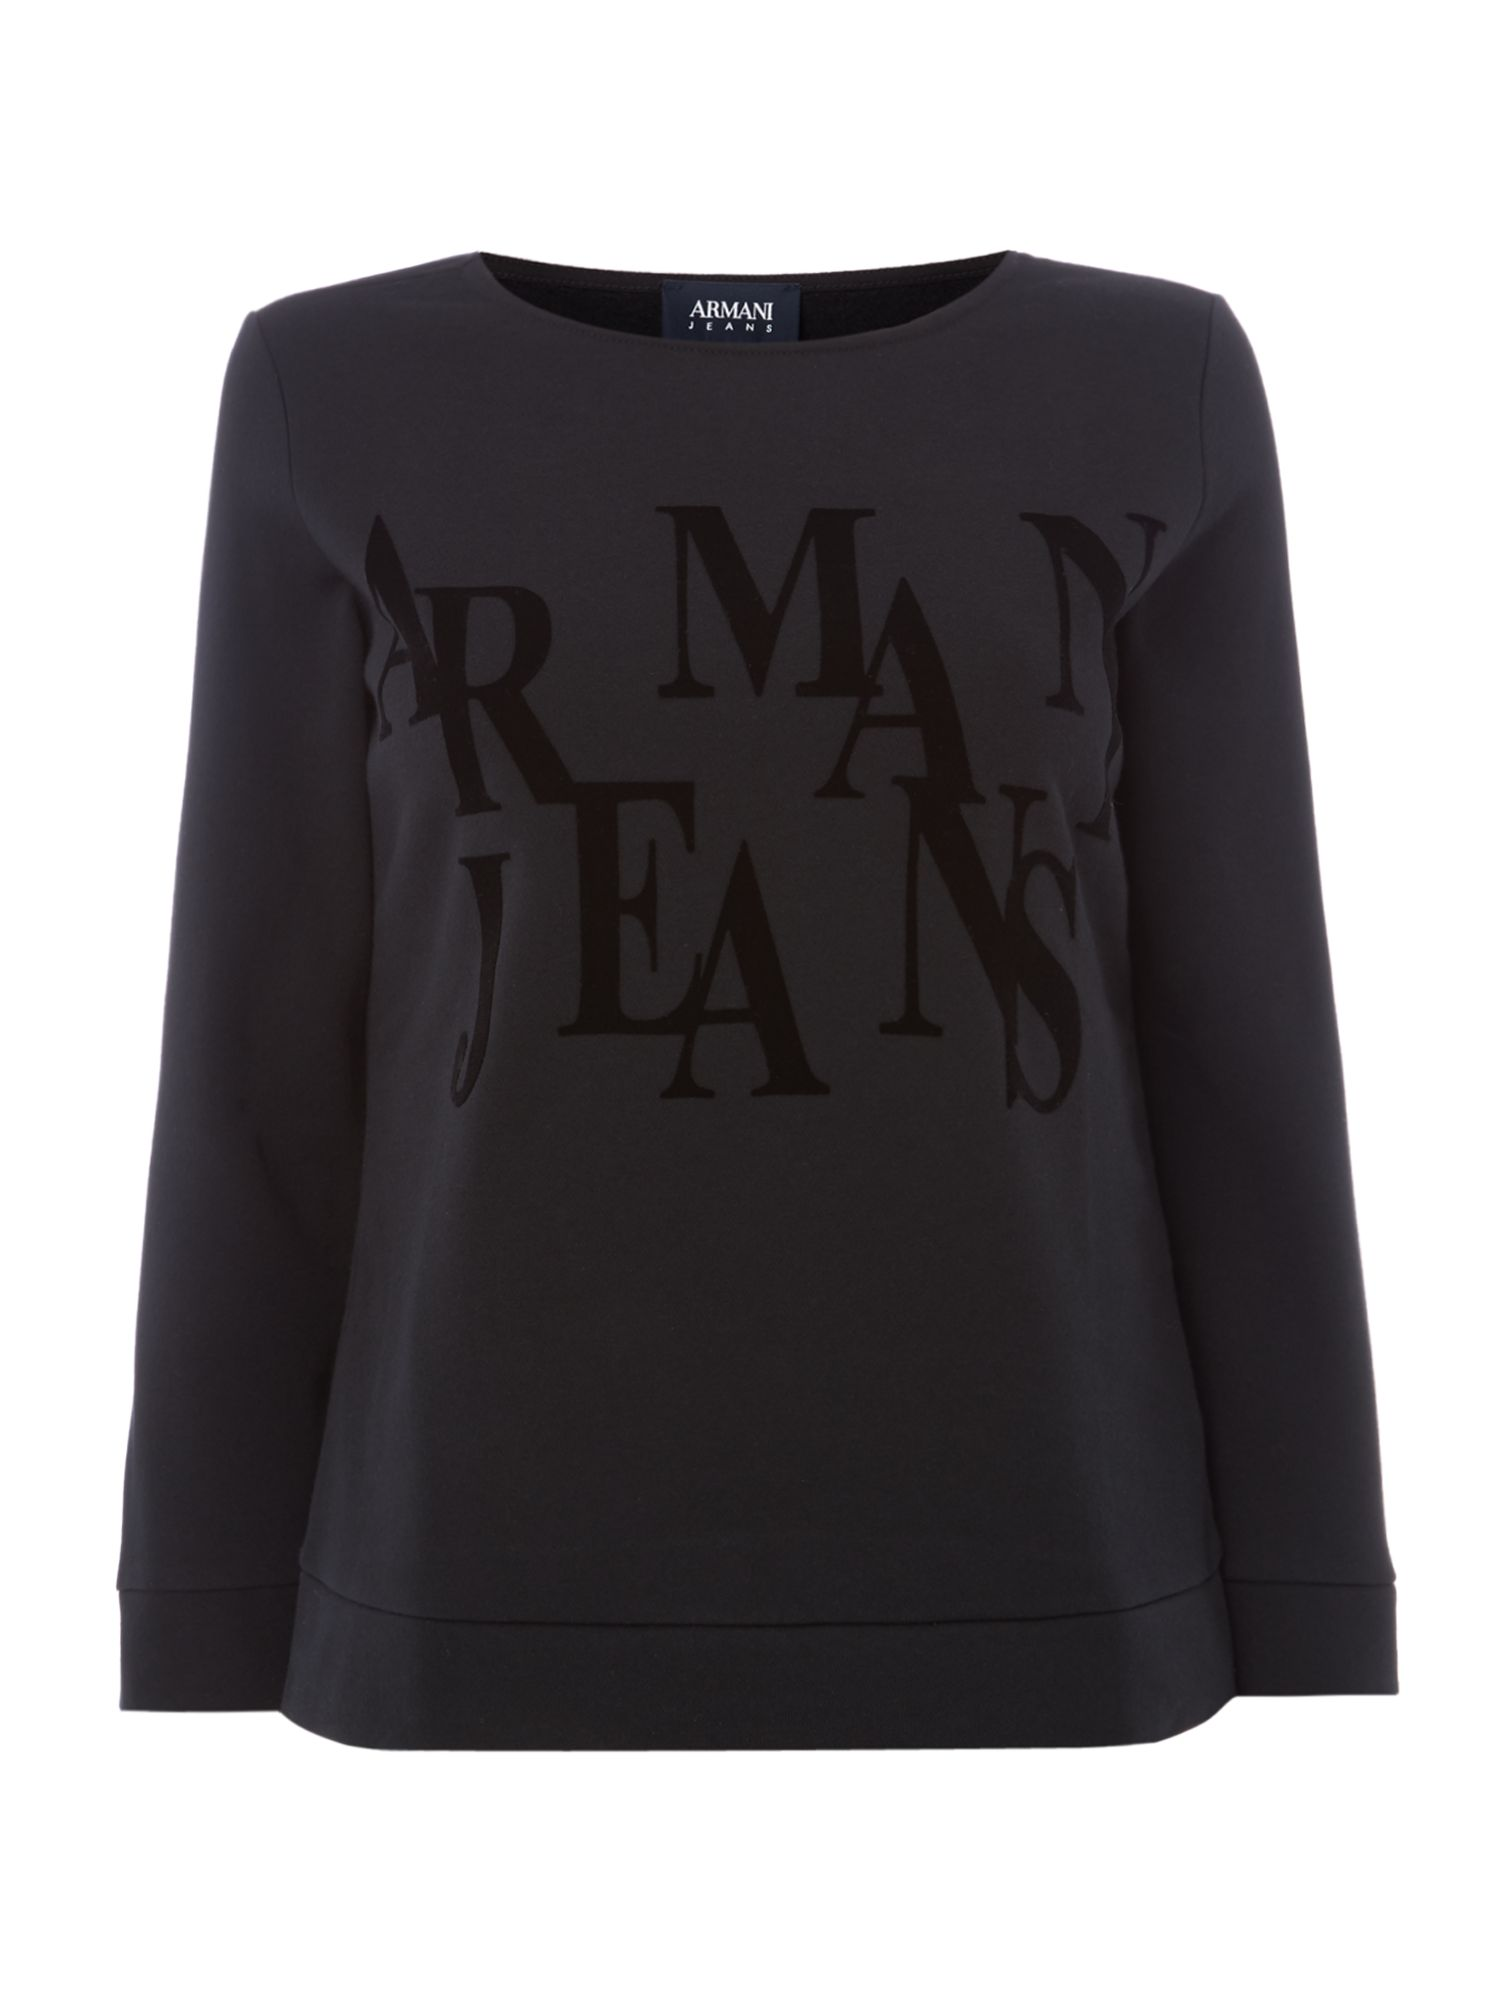 Armani Jeans Crew neck cropped logo top in nero, Black